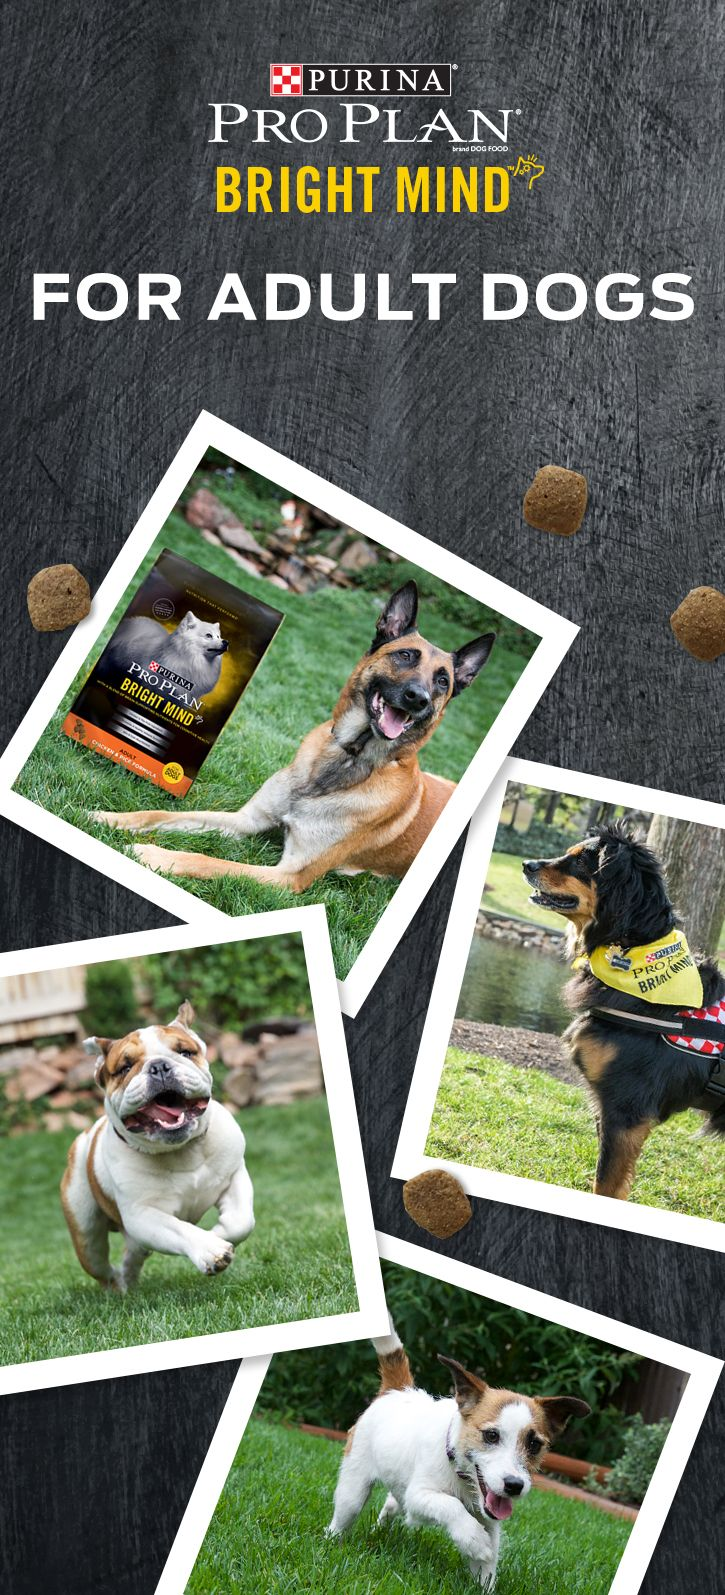 Buy one of our Purina Pro Plan Bright Mind Adult formulas today! Our adult formulas are specially formulated to nourish your dog's mind throughout adulthood. It contains a proprietary blend of nutrients including DHA & EPA, Antioxidants, B Vitamins, and Arginine to support a dog's cognitive health throughout adulthood. And if your dog is seven years or older, there are Bright Mind Adult 7+ formulas which promote mental sharpness and alertness in dogs seven and older.